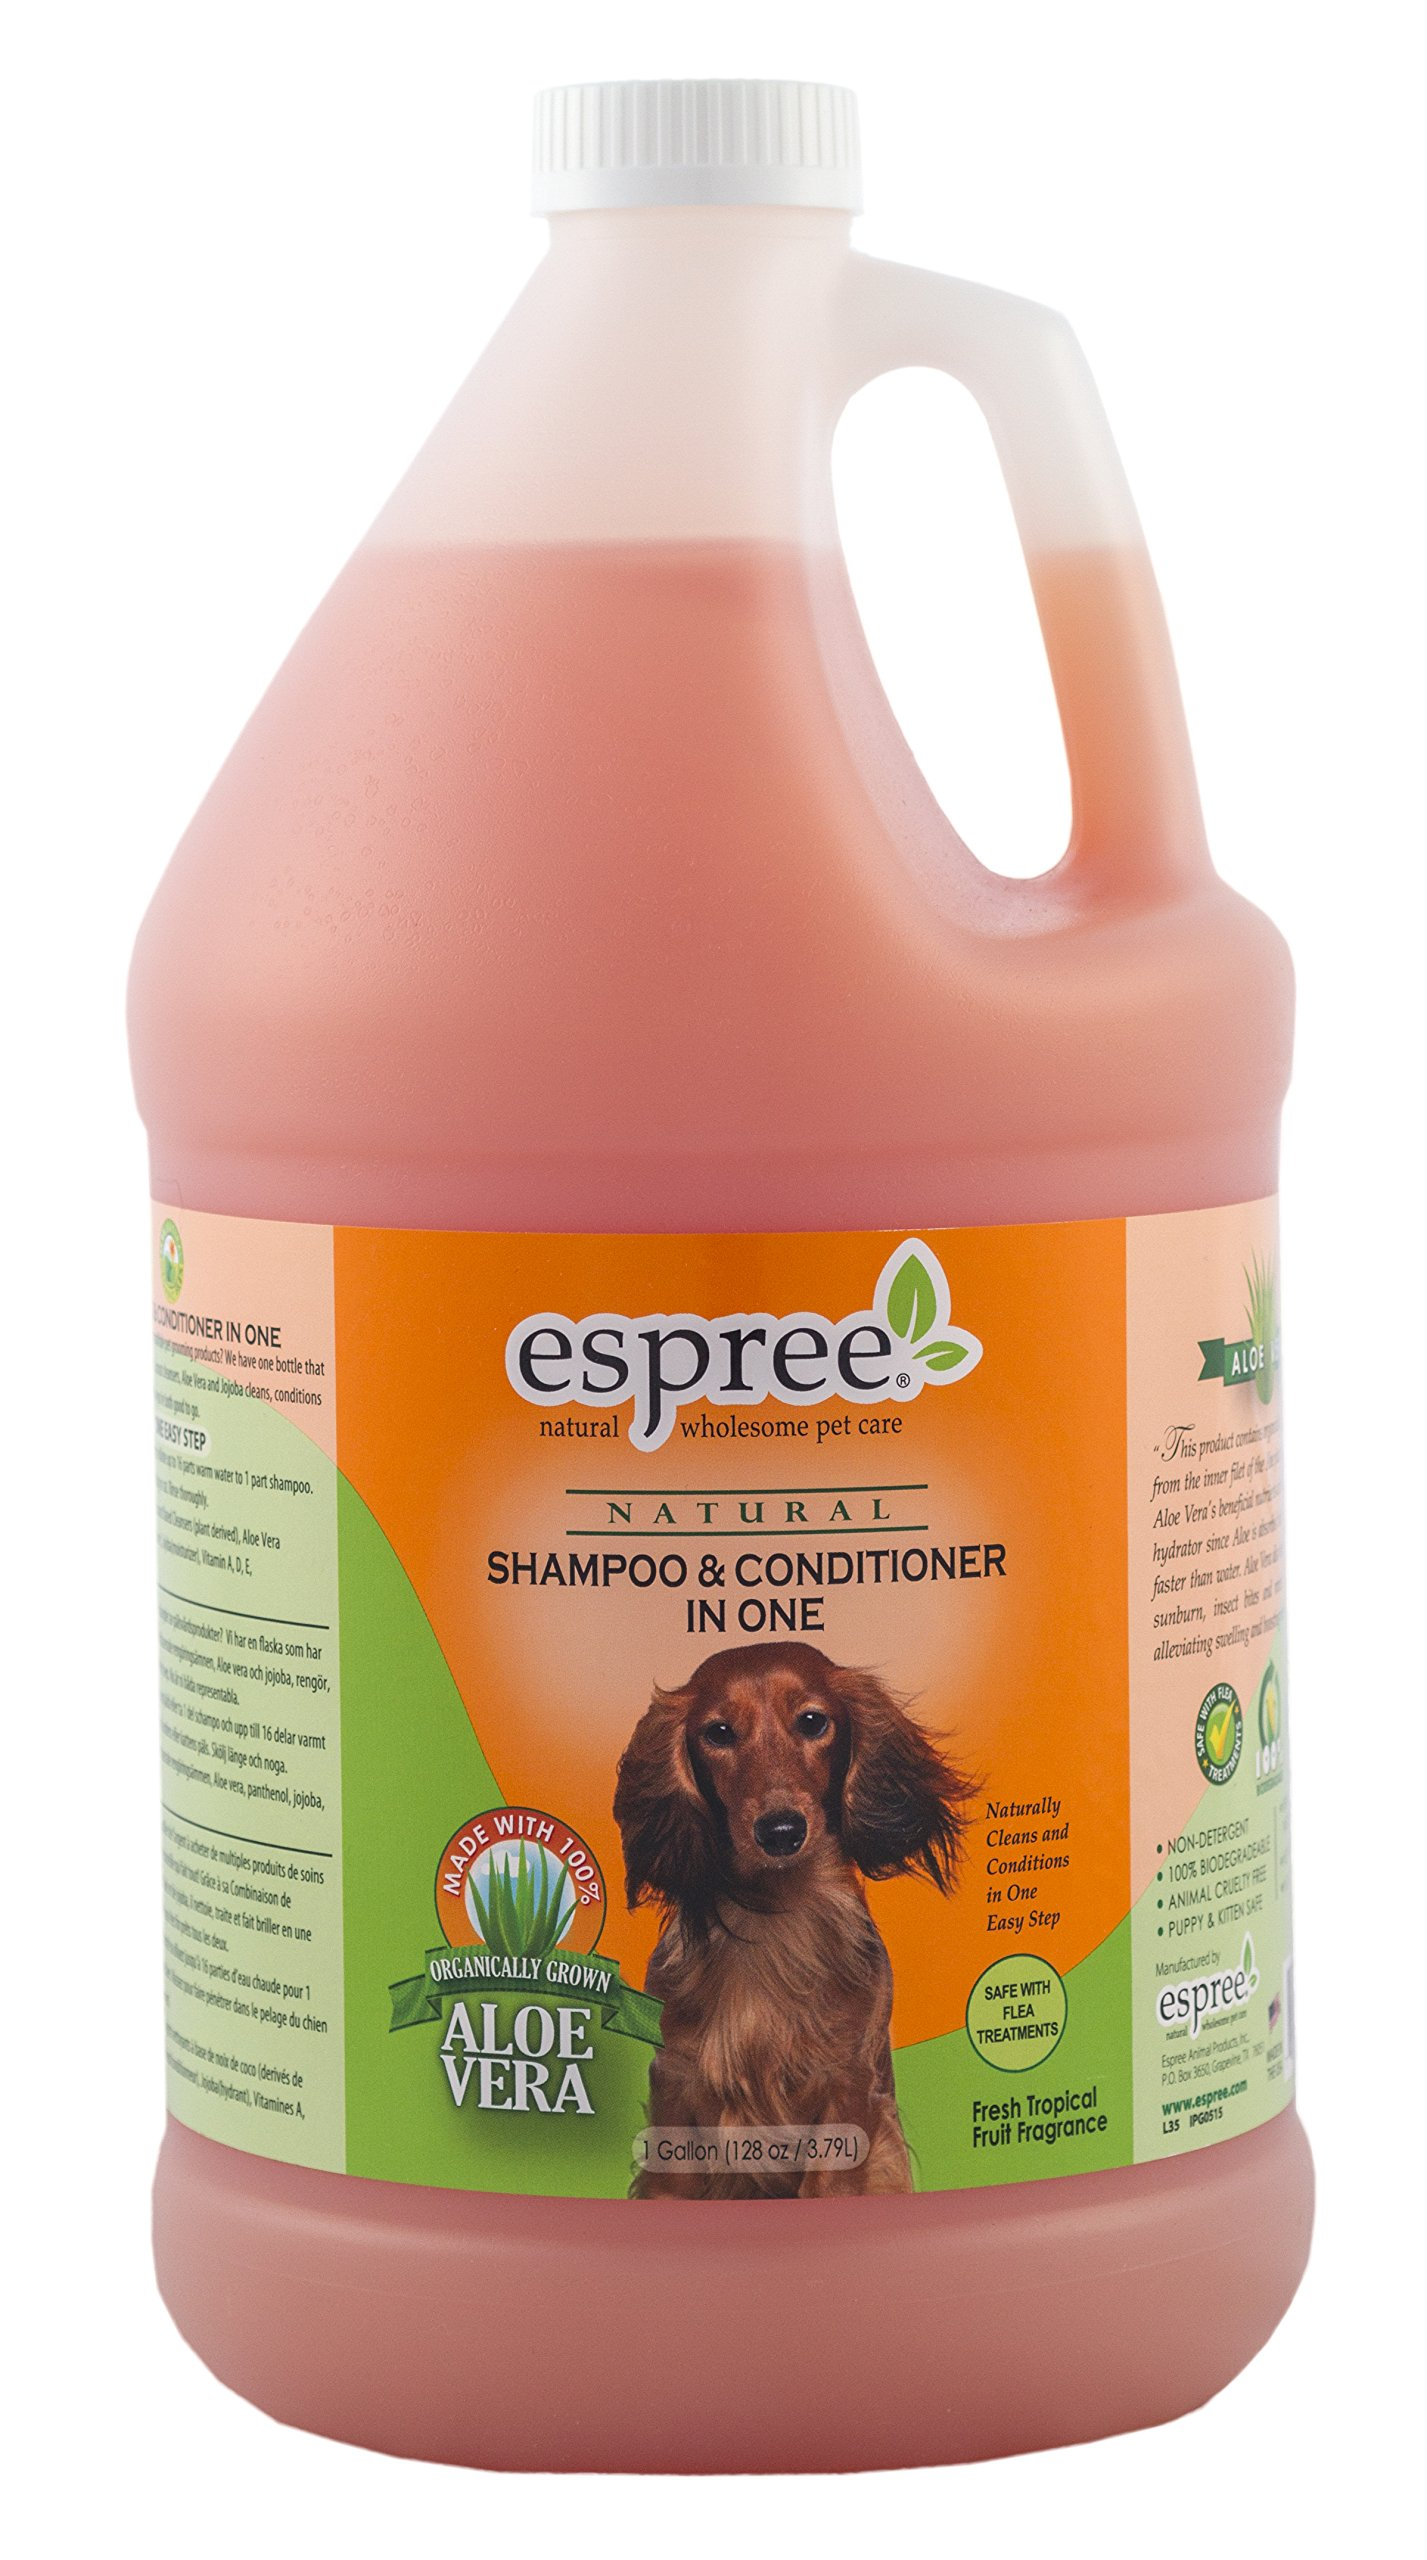 Espree Shampoo & Conditioner In One, 1 gallon